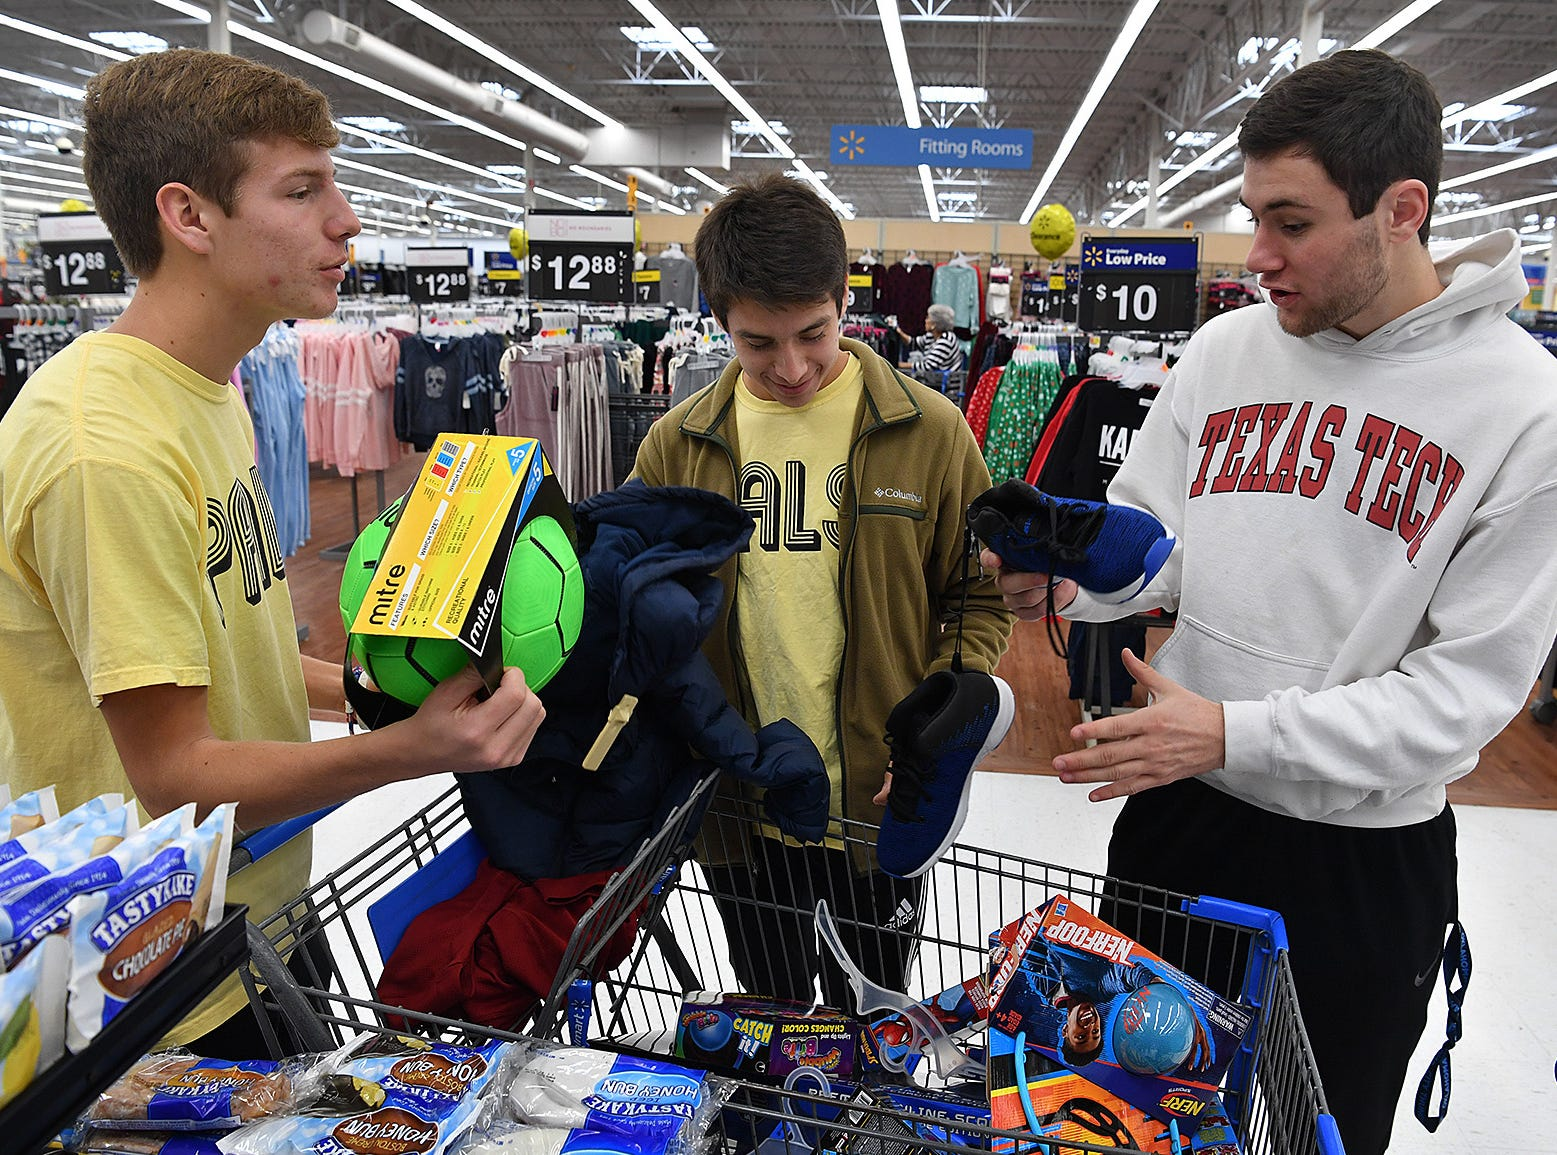 Burkburnett High School PALS students Sloan Lewis, left, Landon Boddy and Gavin Morris, right, talk about items they found on the wish lists of kids staying at the Childrens Aid Society Childrens Home. The PALS work with the Wichita Falls Police Officers Association each year on the project.